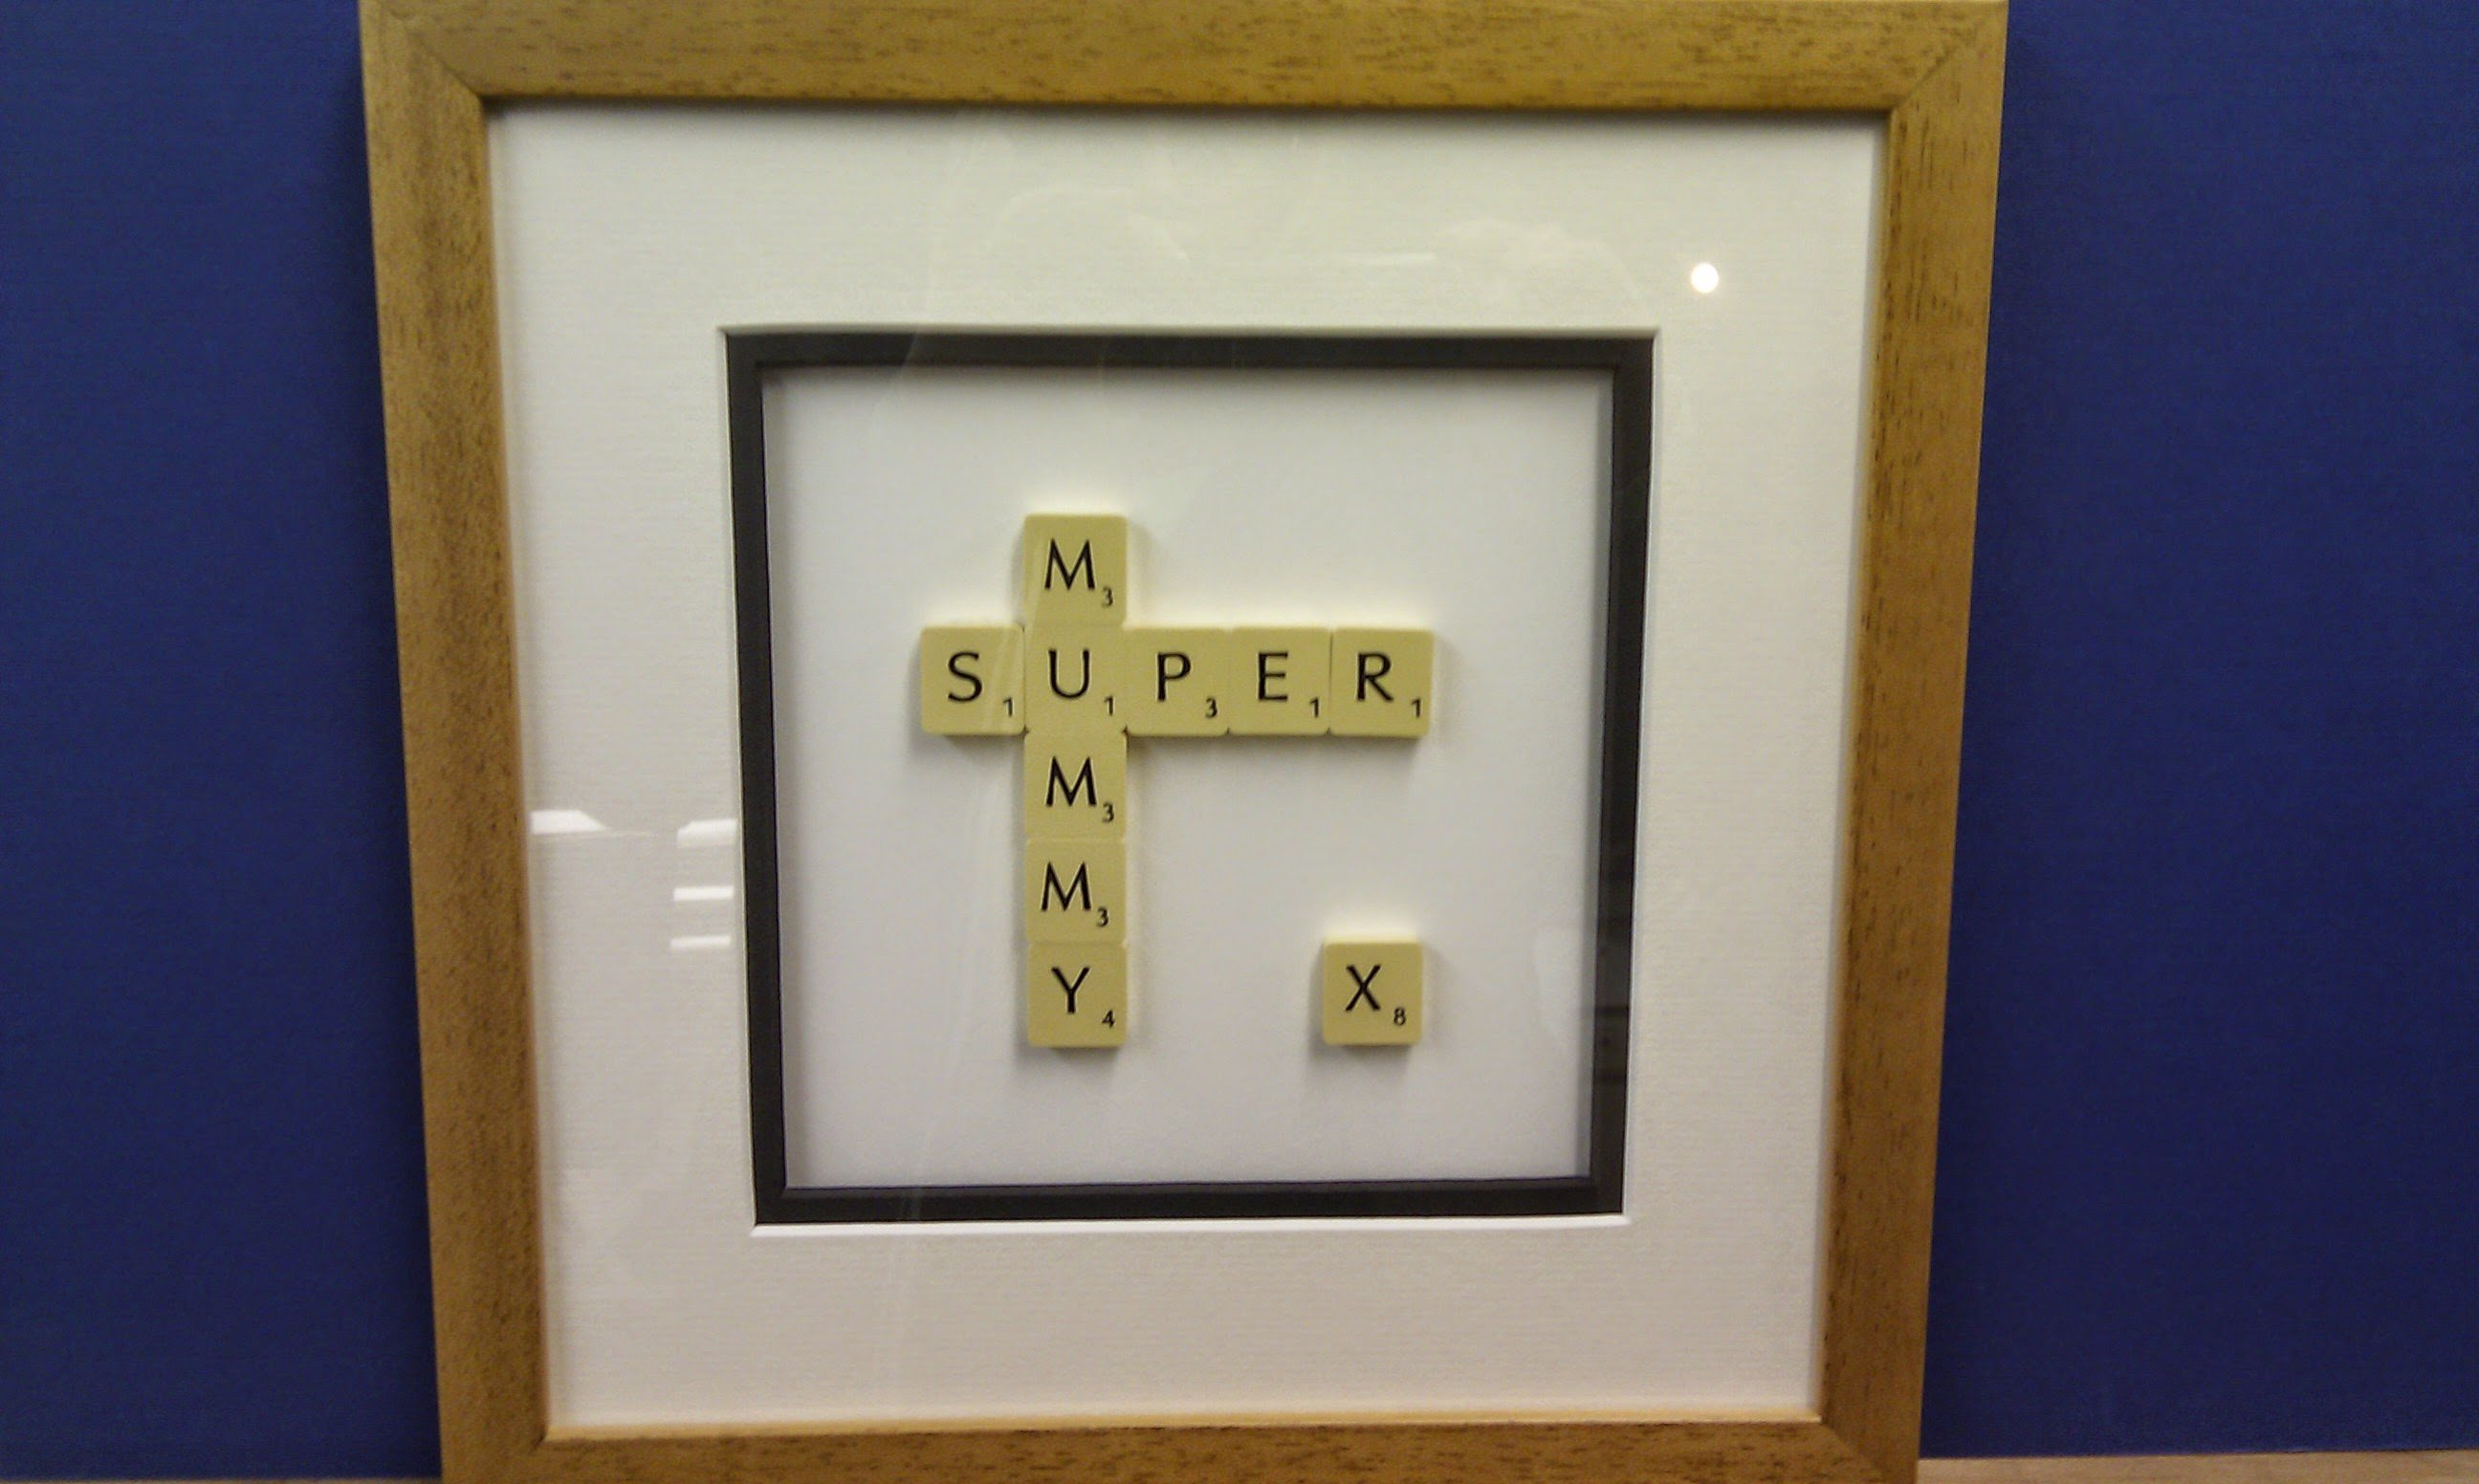 MUMMY SUPER alphabetically arranged